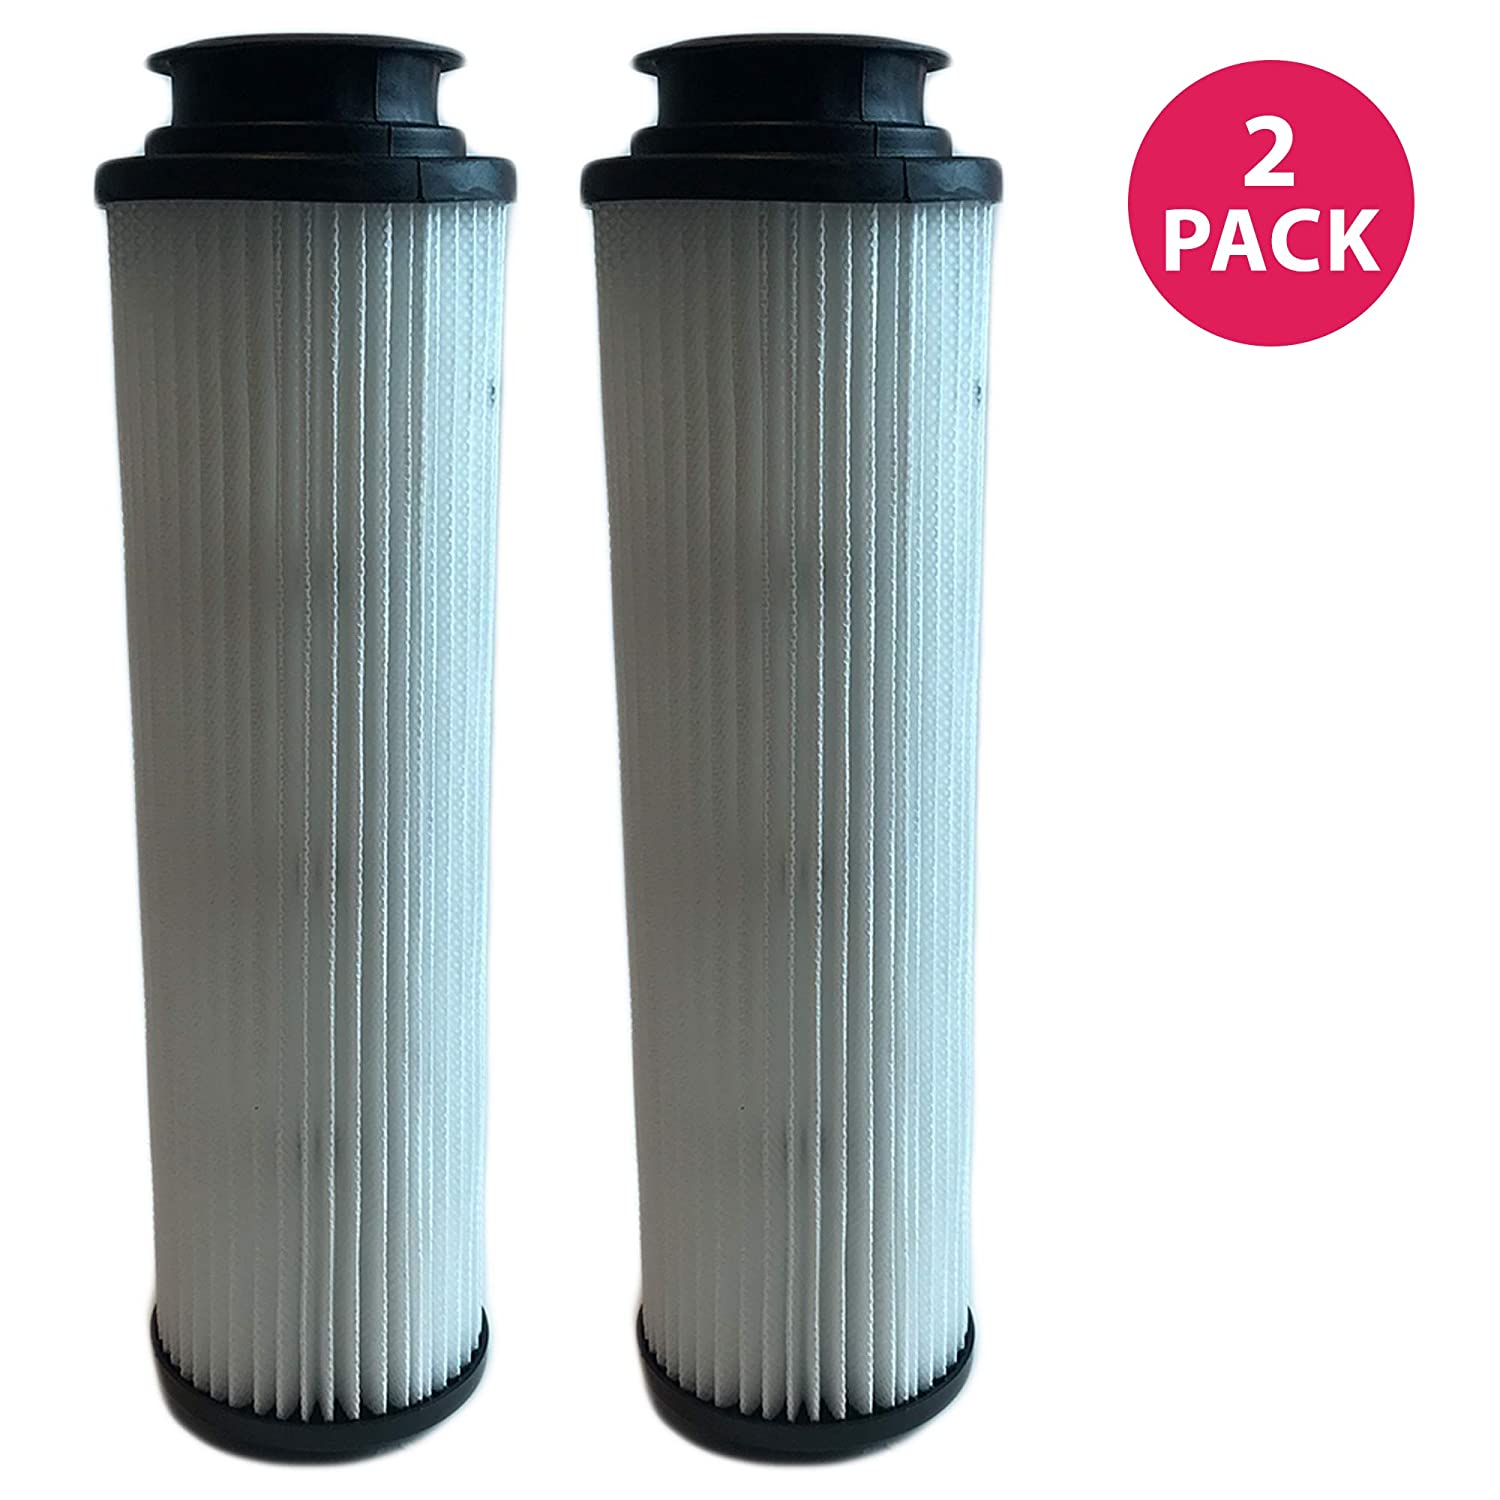 Think Crucial 2 Replacements for Hoover Windtunnel Bagless HEPA Style Filter Fits Empower & Savvy, Compatible With Part # 40140201, 43611042 & 42611049, Washable & Reusable